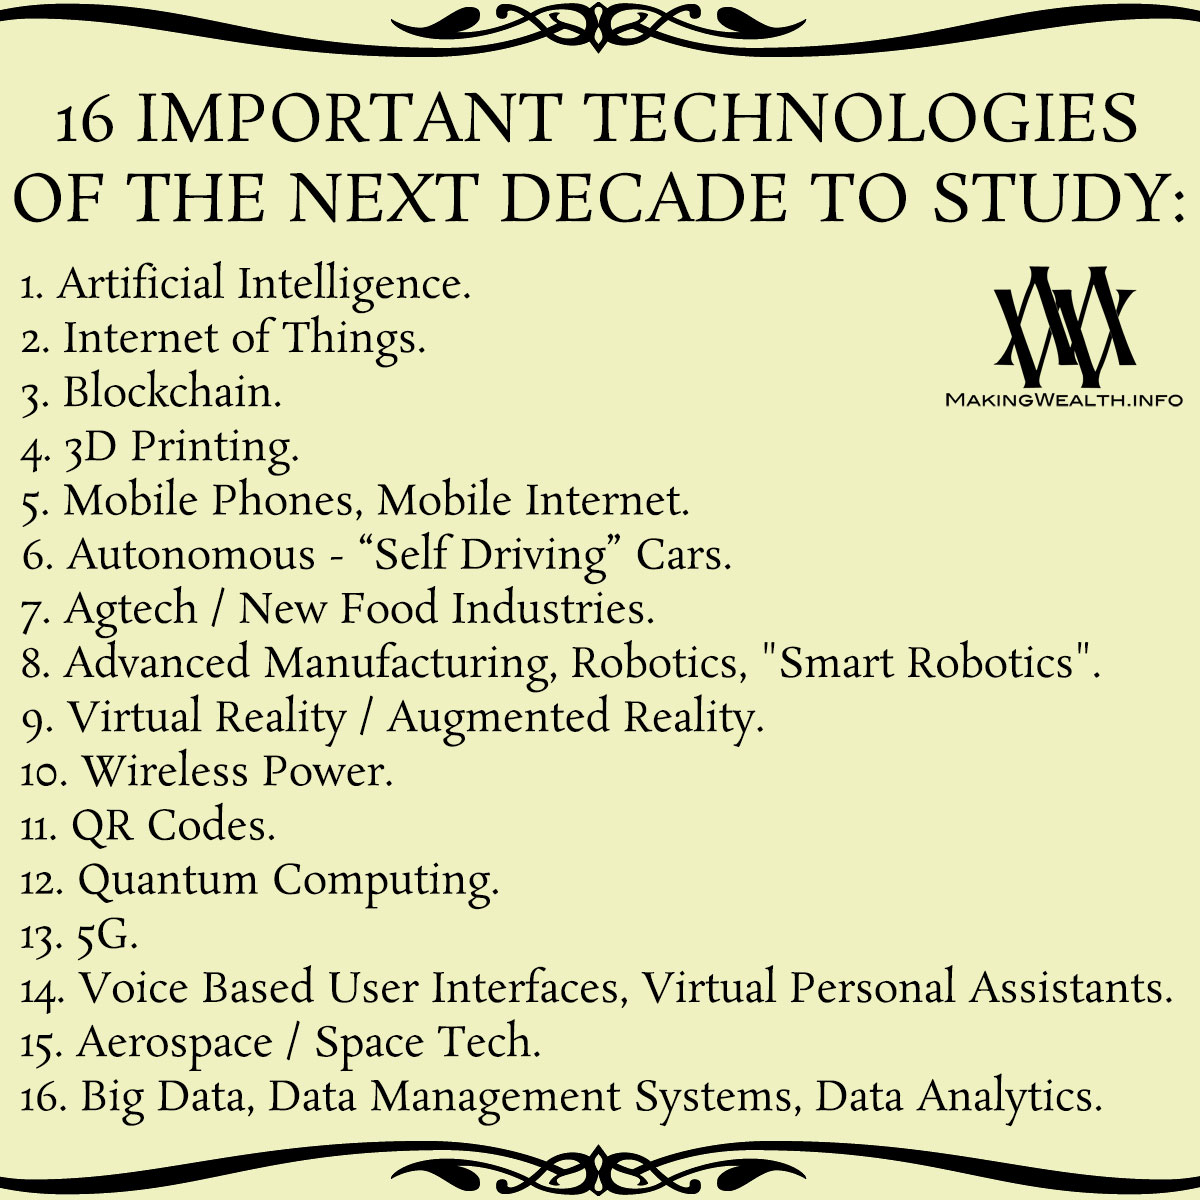 16 Technologies Of The Next Decade - Important To Study